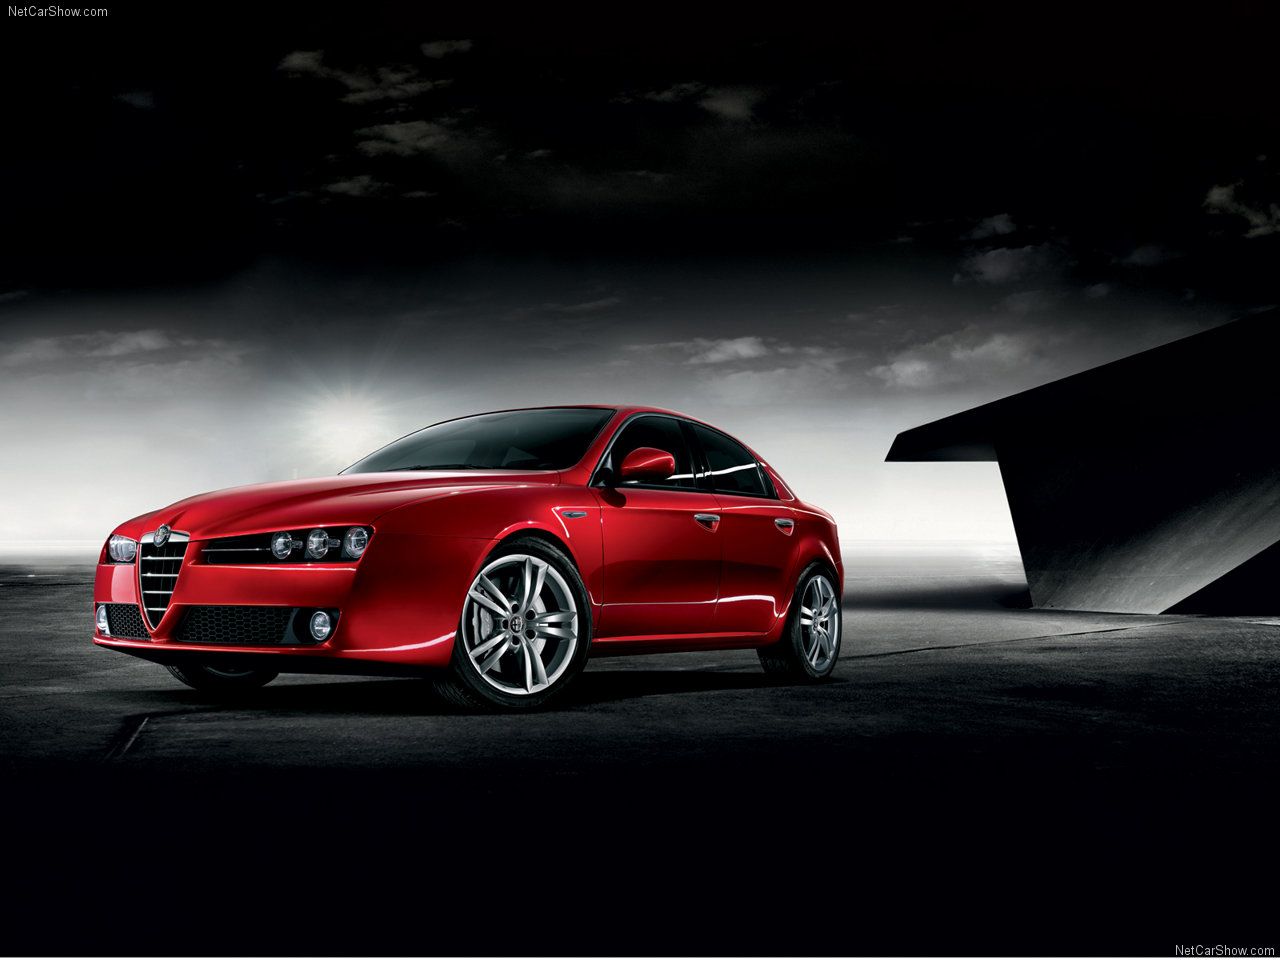 Alfa Romeo-159 2009 1280x960 wallpaper 001